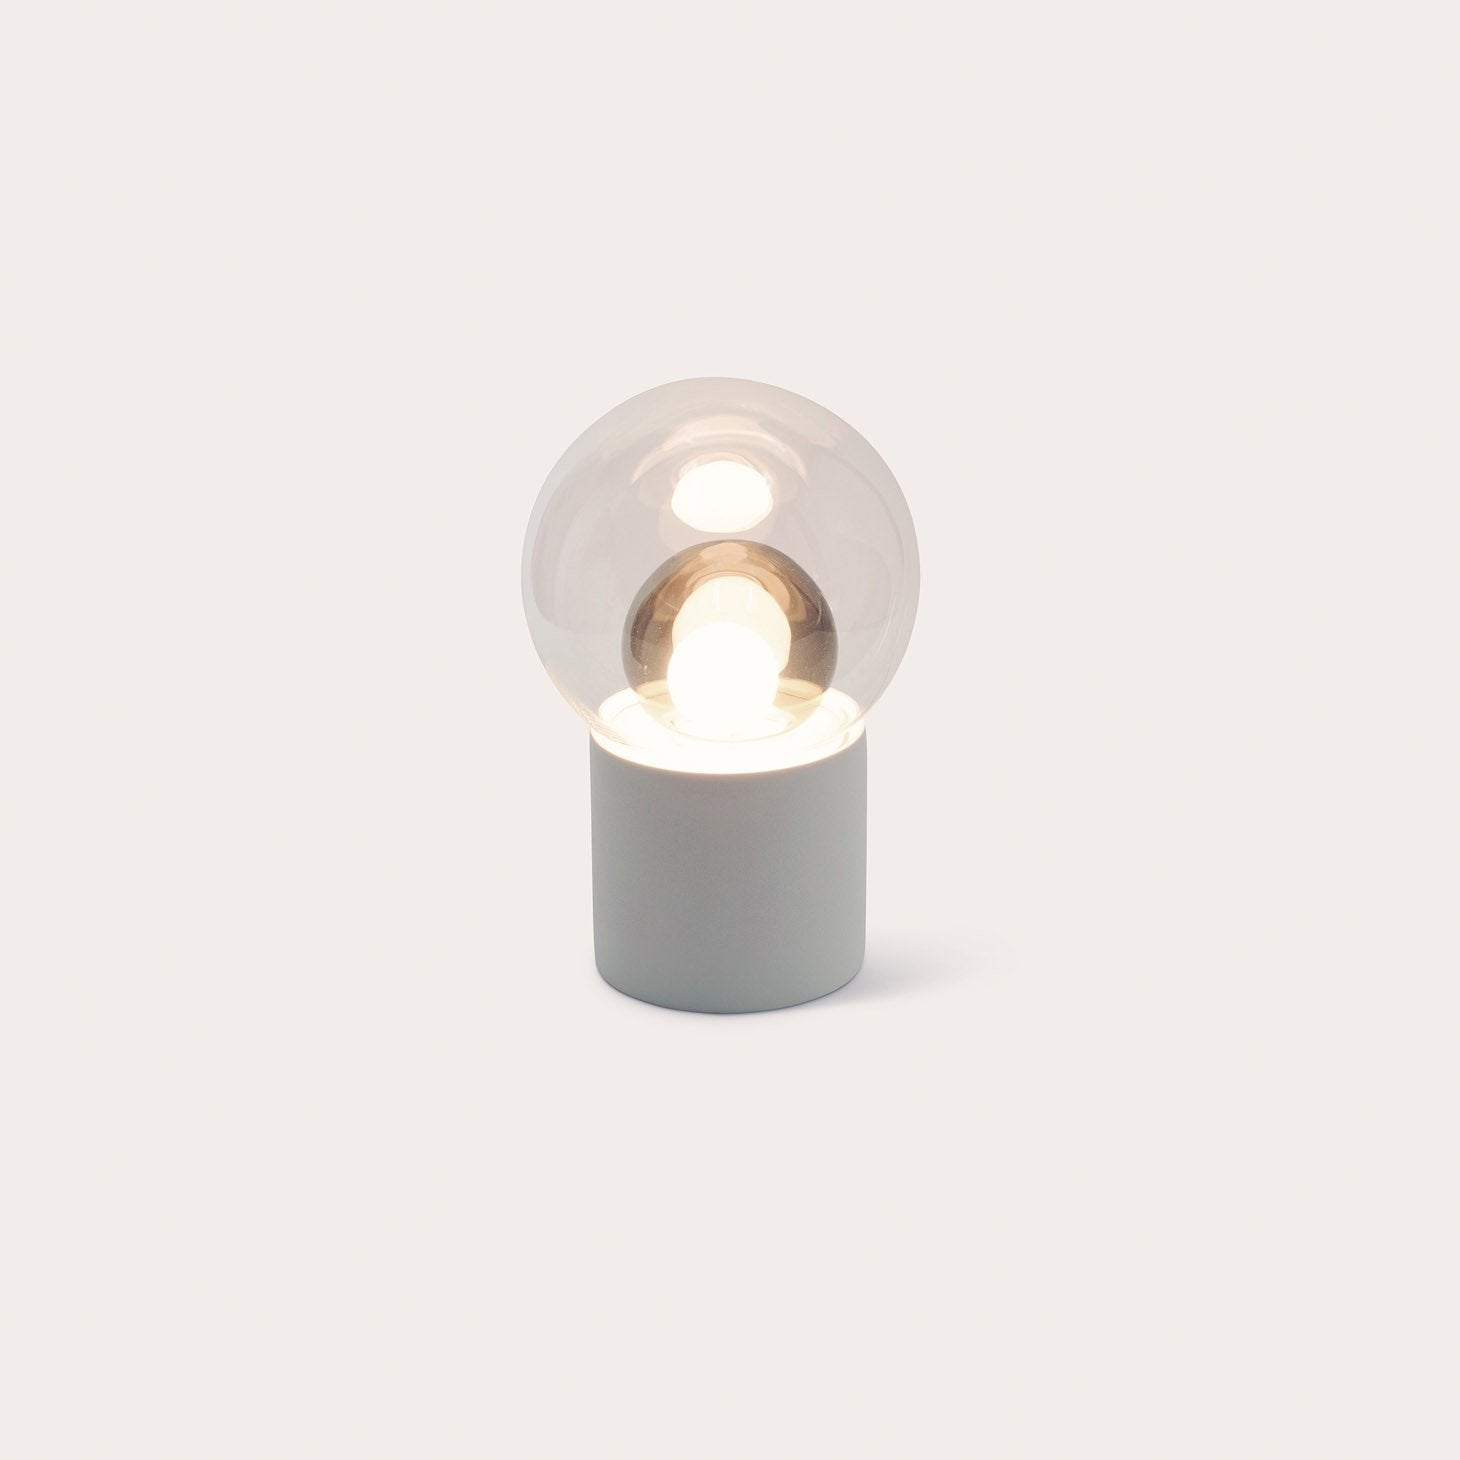 Boule Lighting Sebastian Herkner Designer Furniture Sku: 747-160-10038